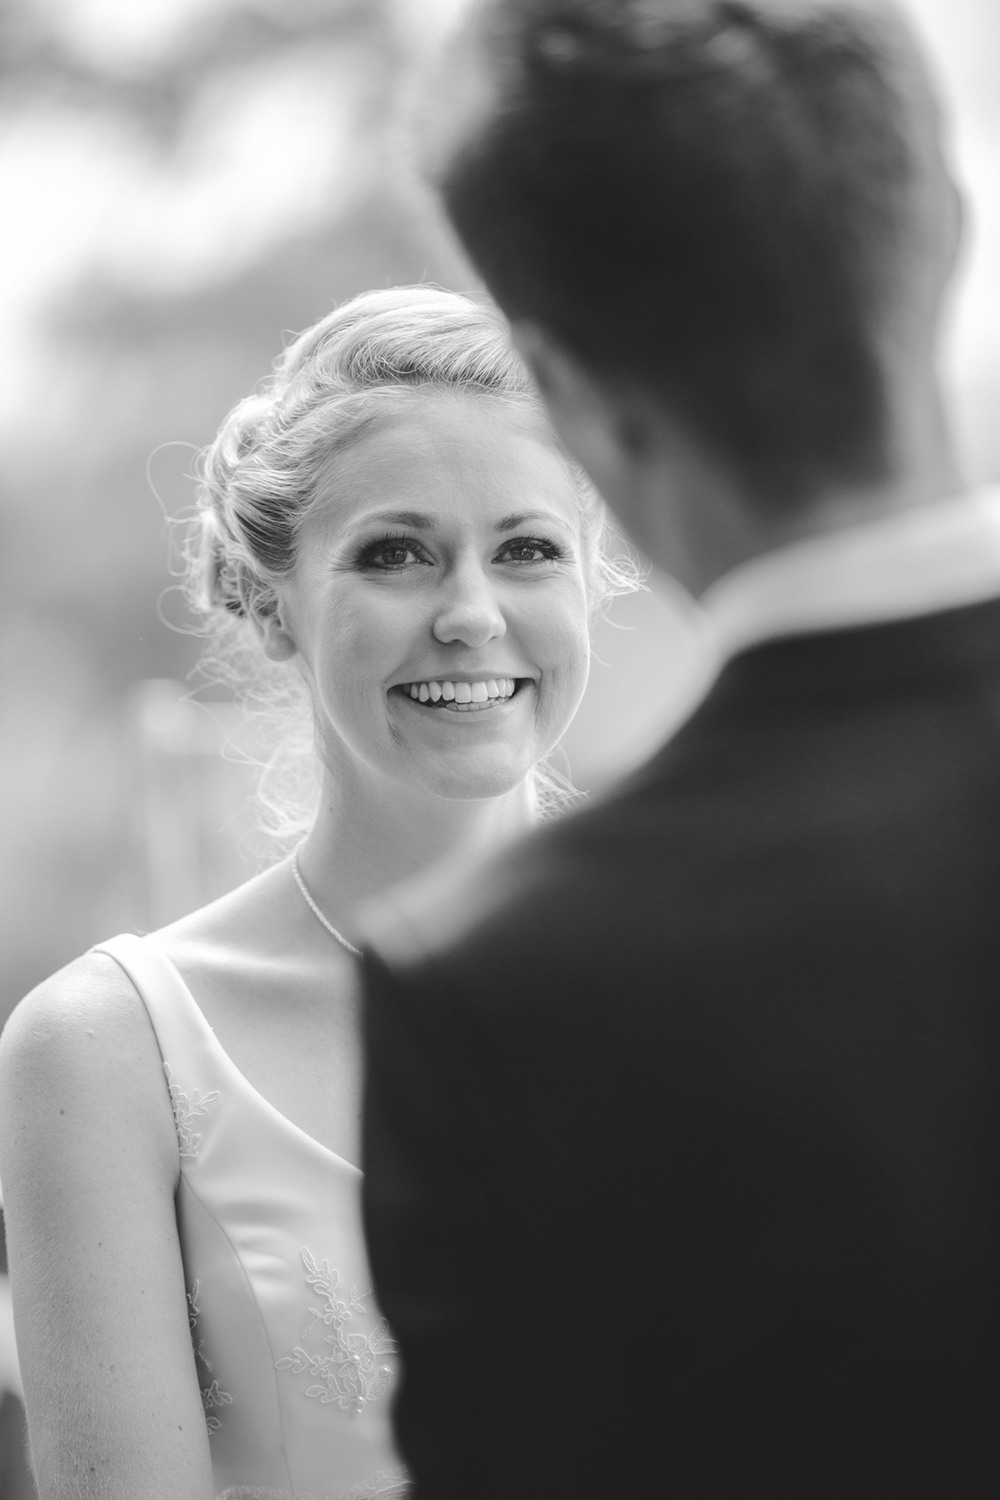 33-sunshine-coast-wedding-photography-all-the-love-in-the-world-noosa-mooloolaba-glasshouse-brisbane-katie-ryan5140.jpg